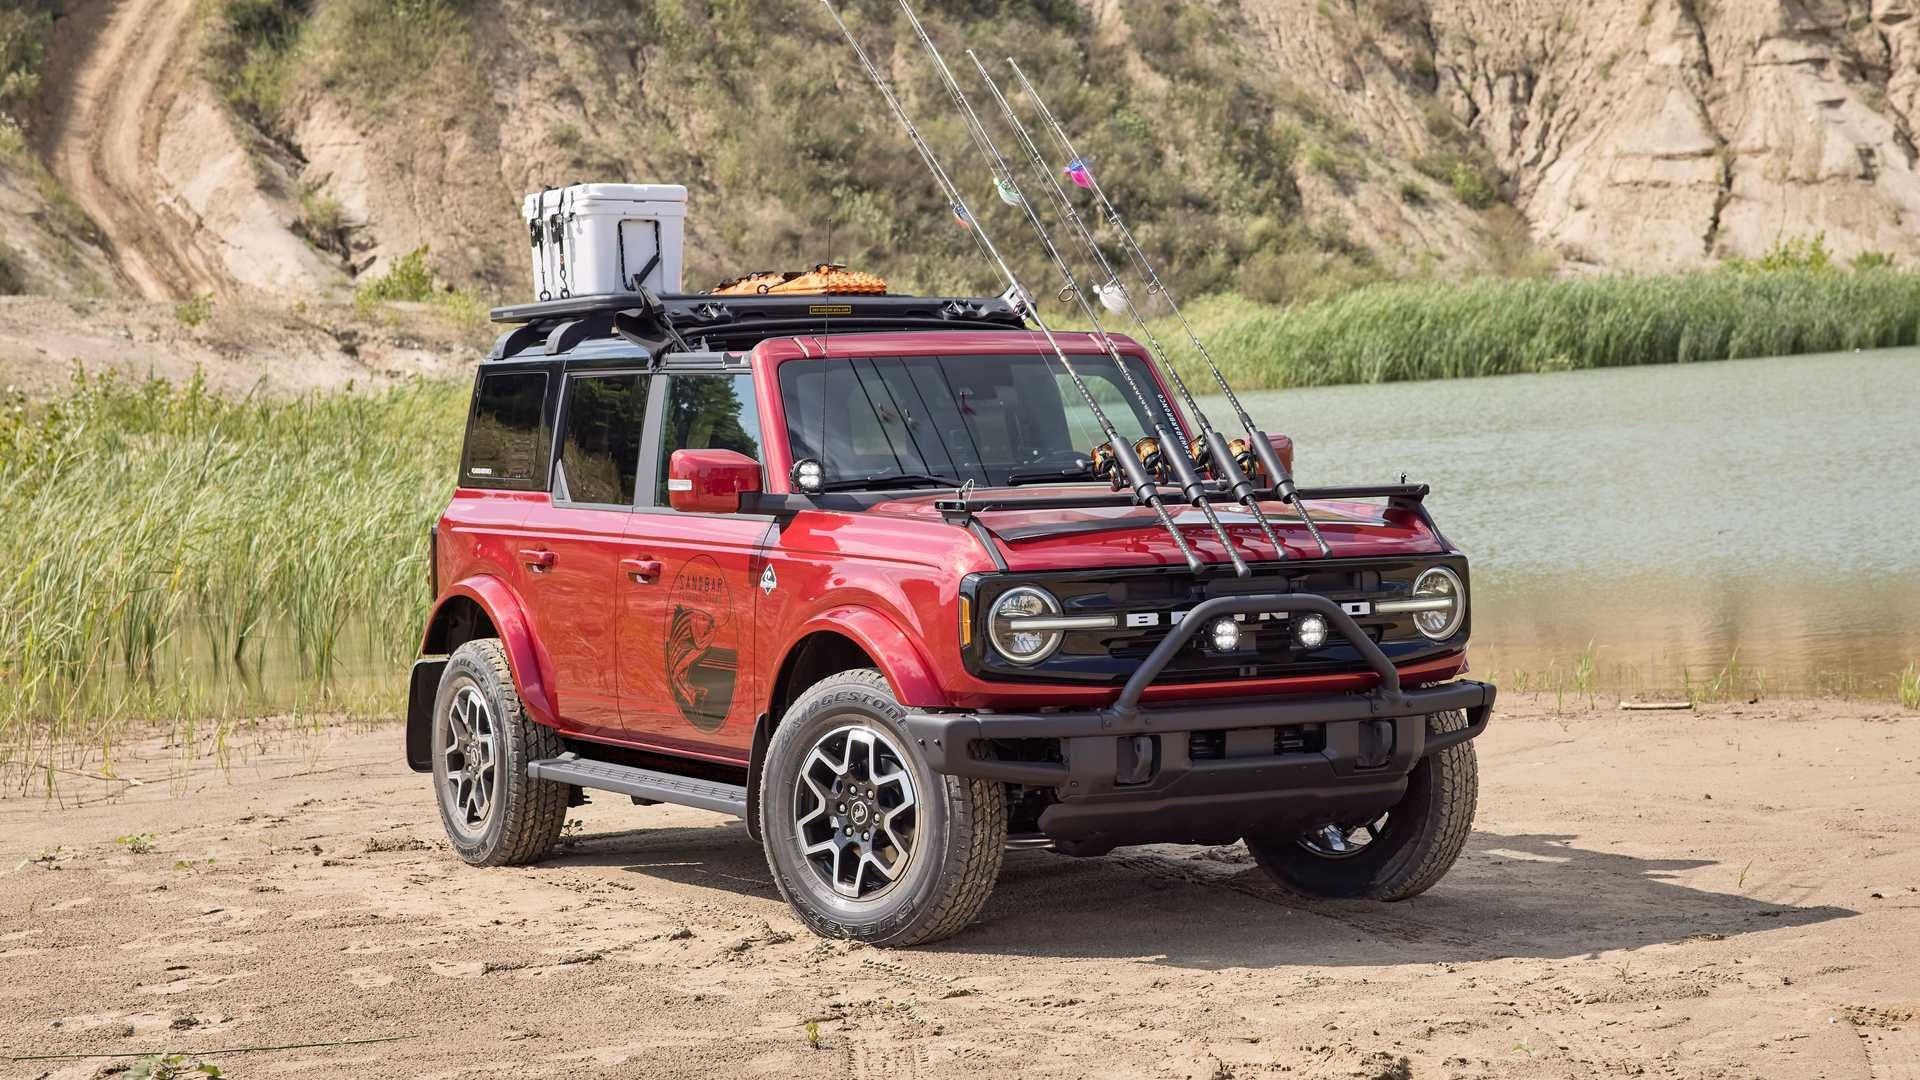 Ford Bronco Factory-Backed Accessories May Debut In Dedicated Event